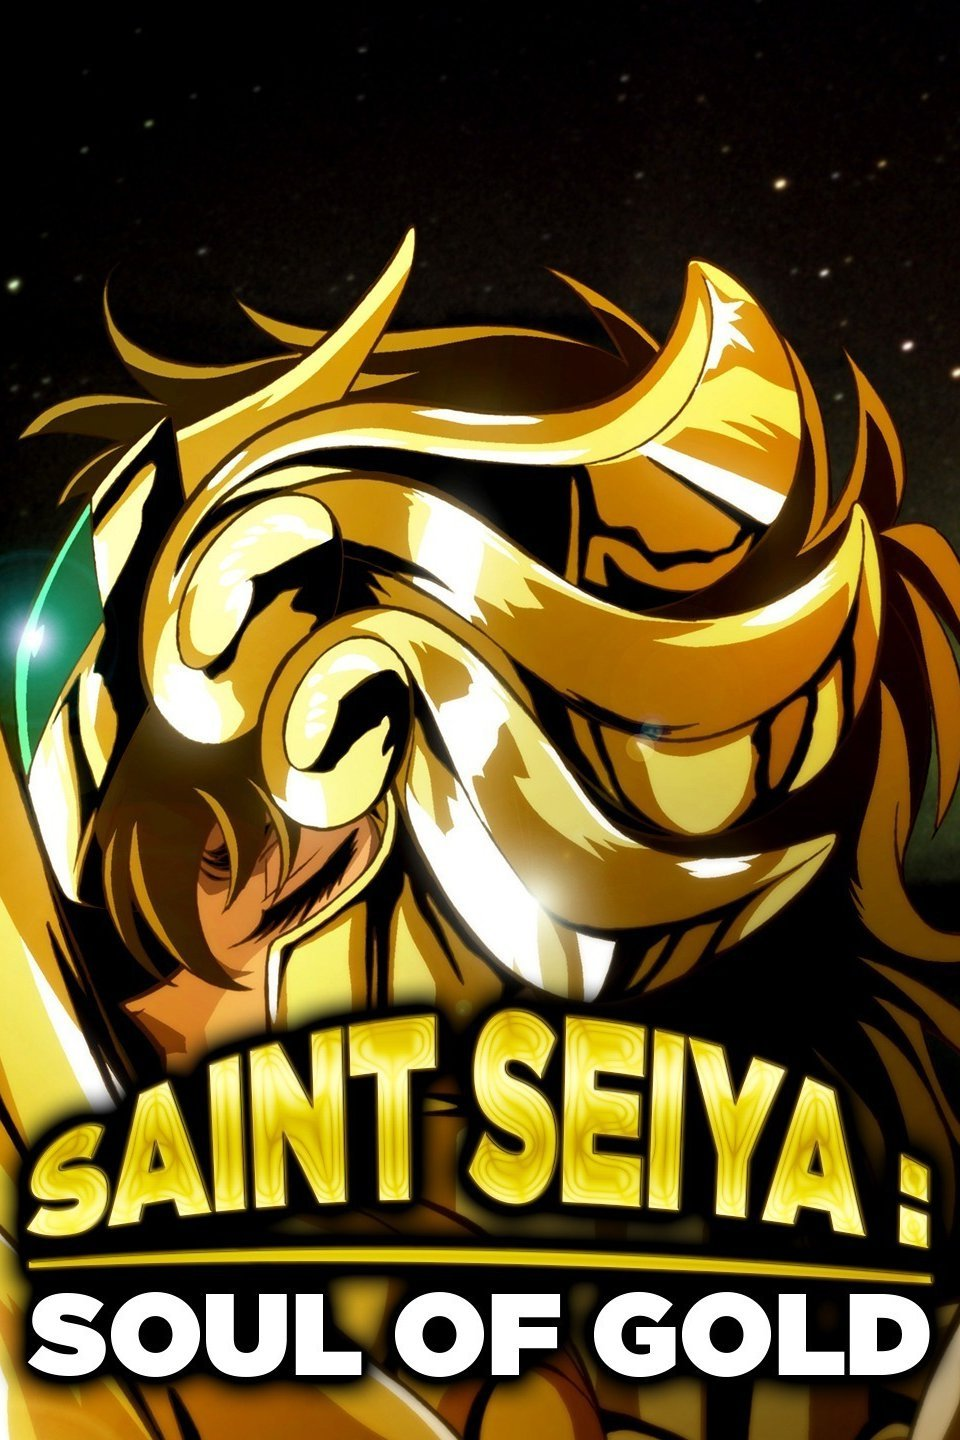 Saint Seiya - Soul of Gold ,聖闘士星矢 -黄金魂 soul of gold , Anime . HD . 720p , Action, Adventure, Fantasy, Sci-Fi, Shounen